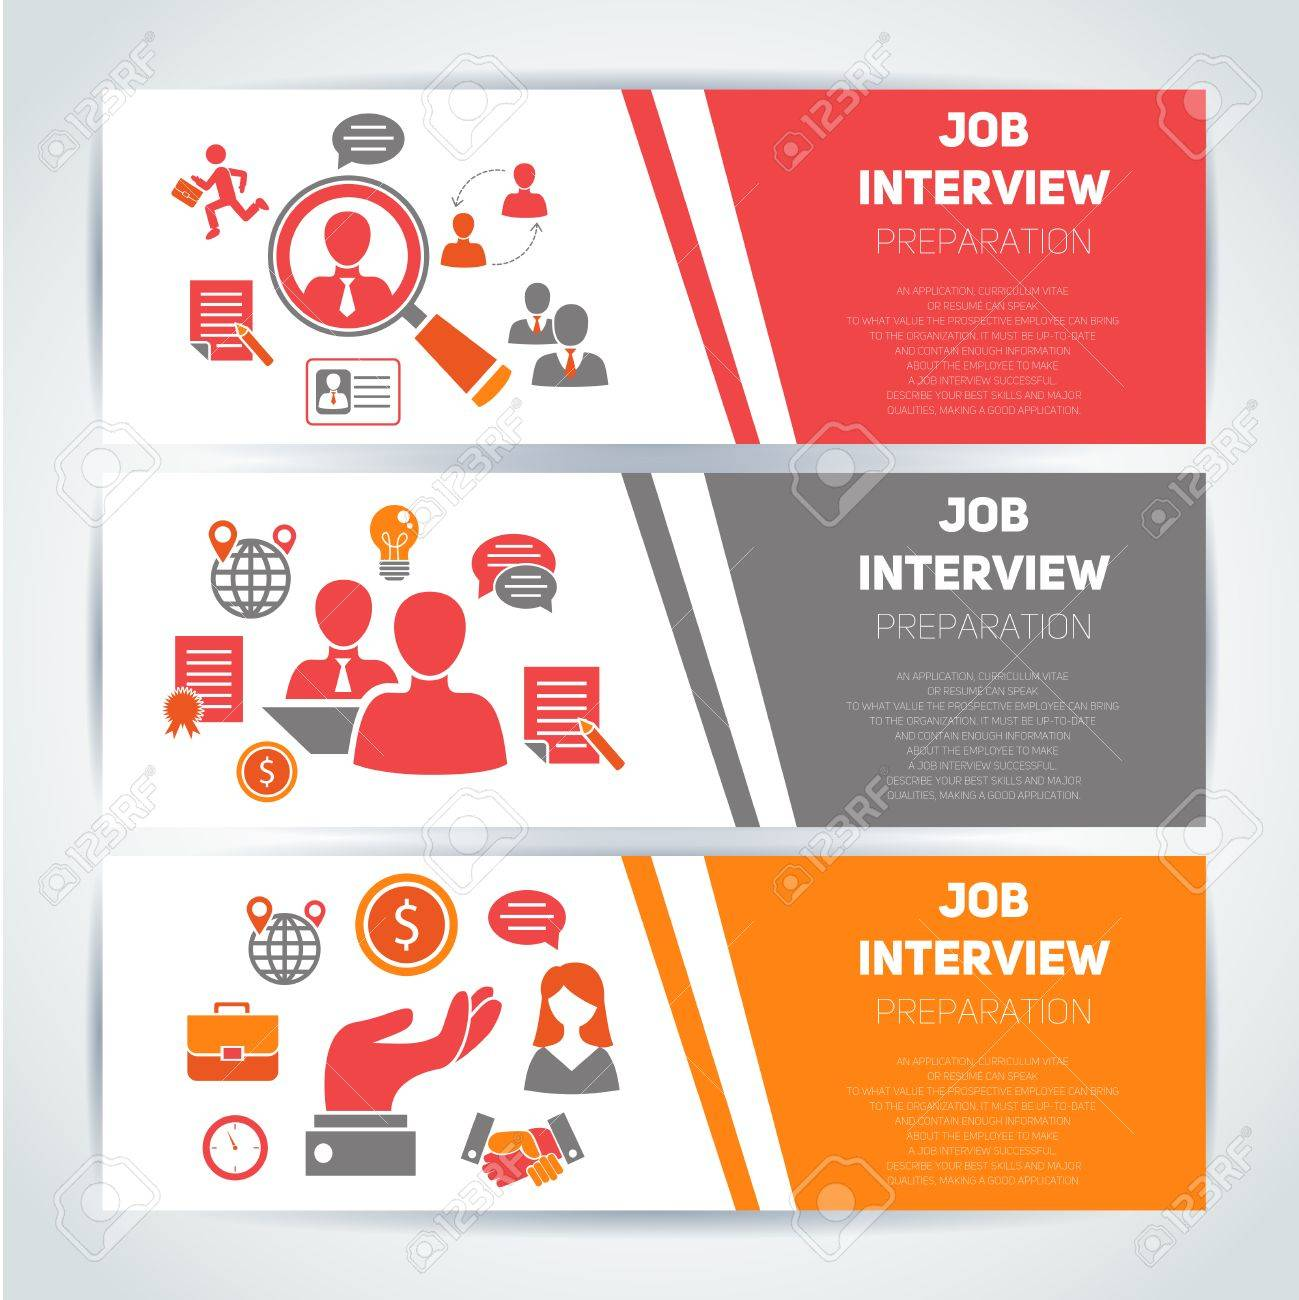 job interview preparation flat banner horizontal set search job interview preparation flat banner horizontal set search recruitment worker isolated vector illustration stock vector